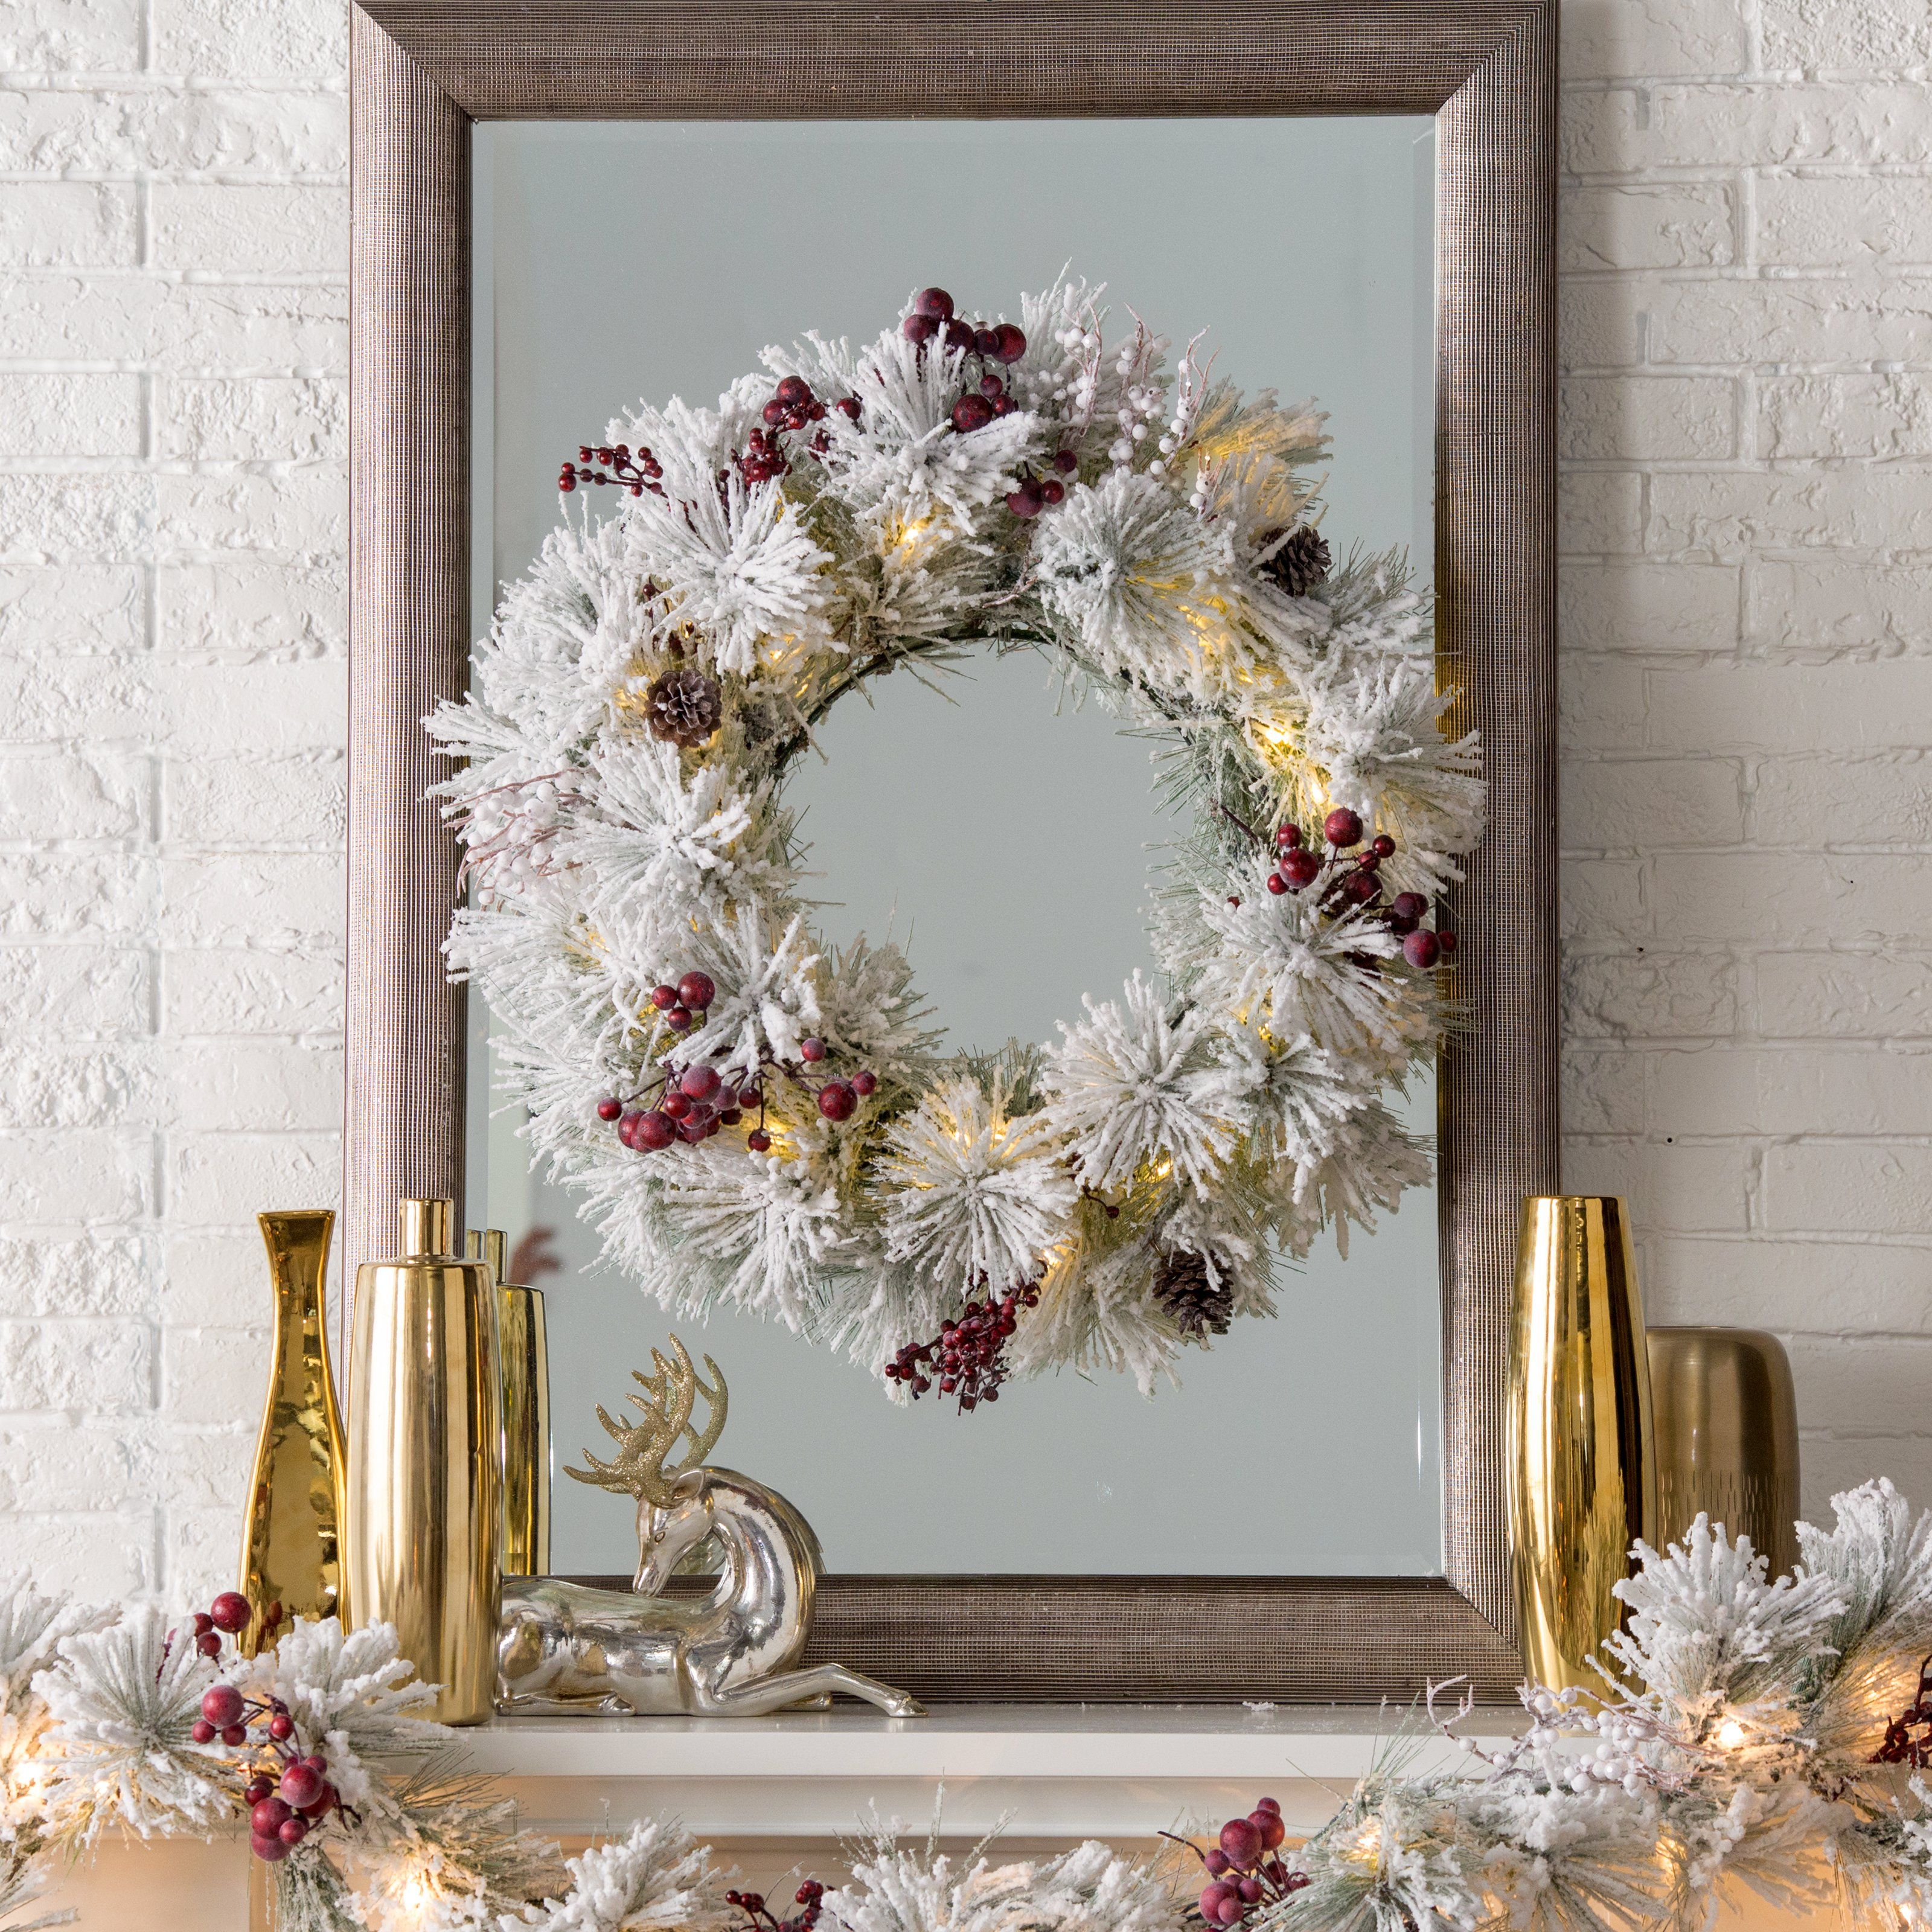 Belham Living Flocked Pine Needle 28 in. Pre-Lit Battery Operated Wreath with Berries and Pine Cones | from hayneedle.com